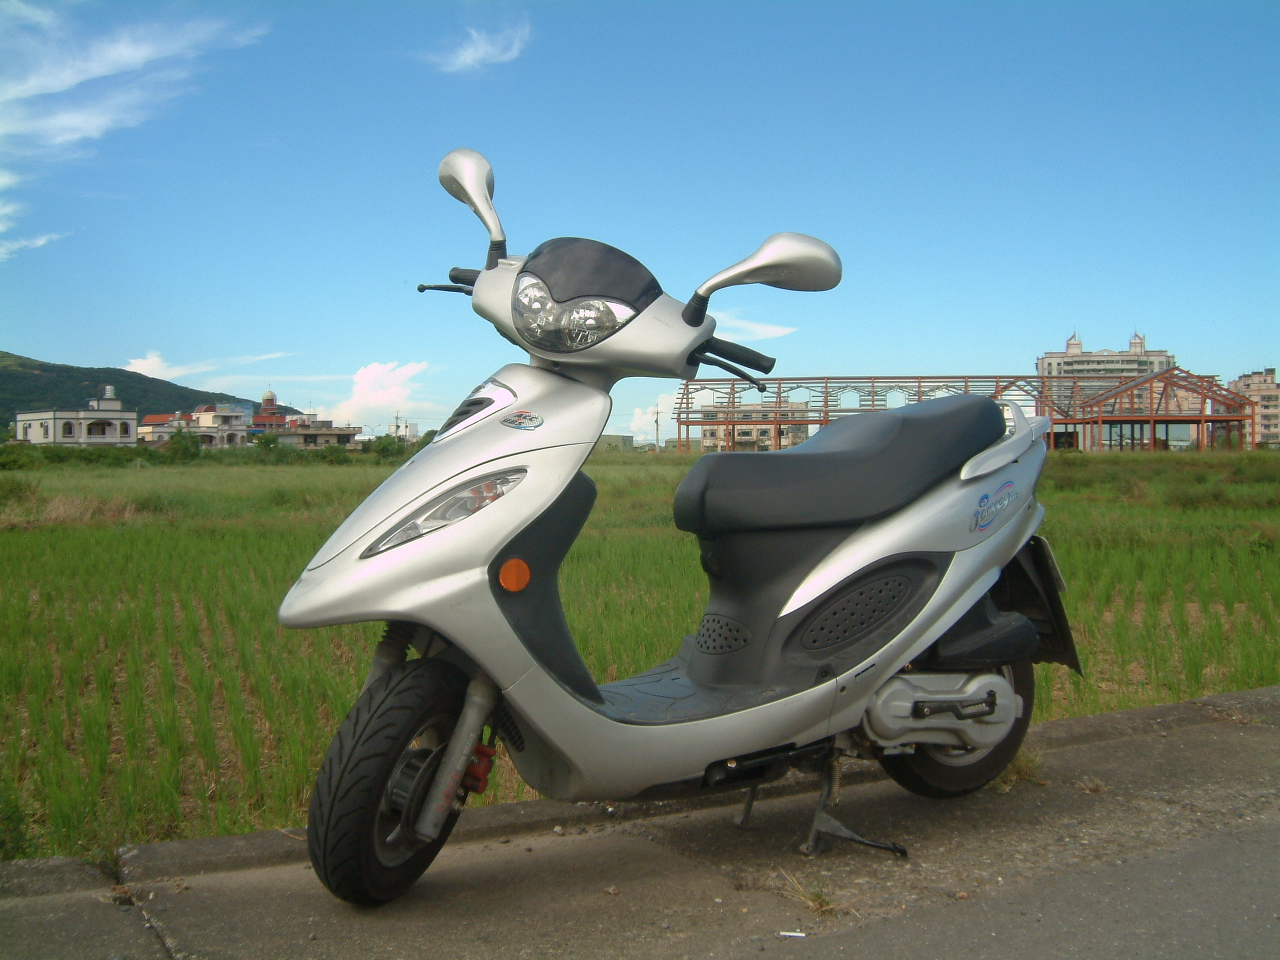 My motorcycle: Kymco G3 125  took by Vincent on